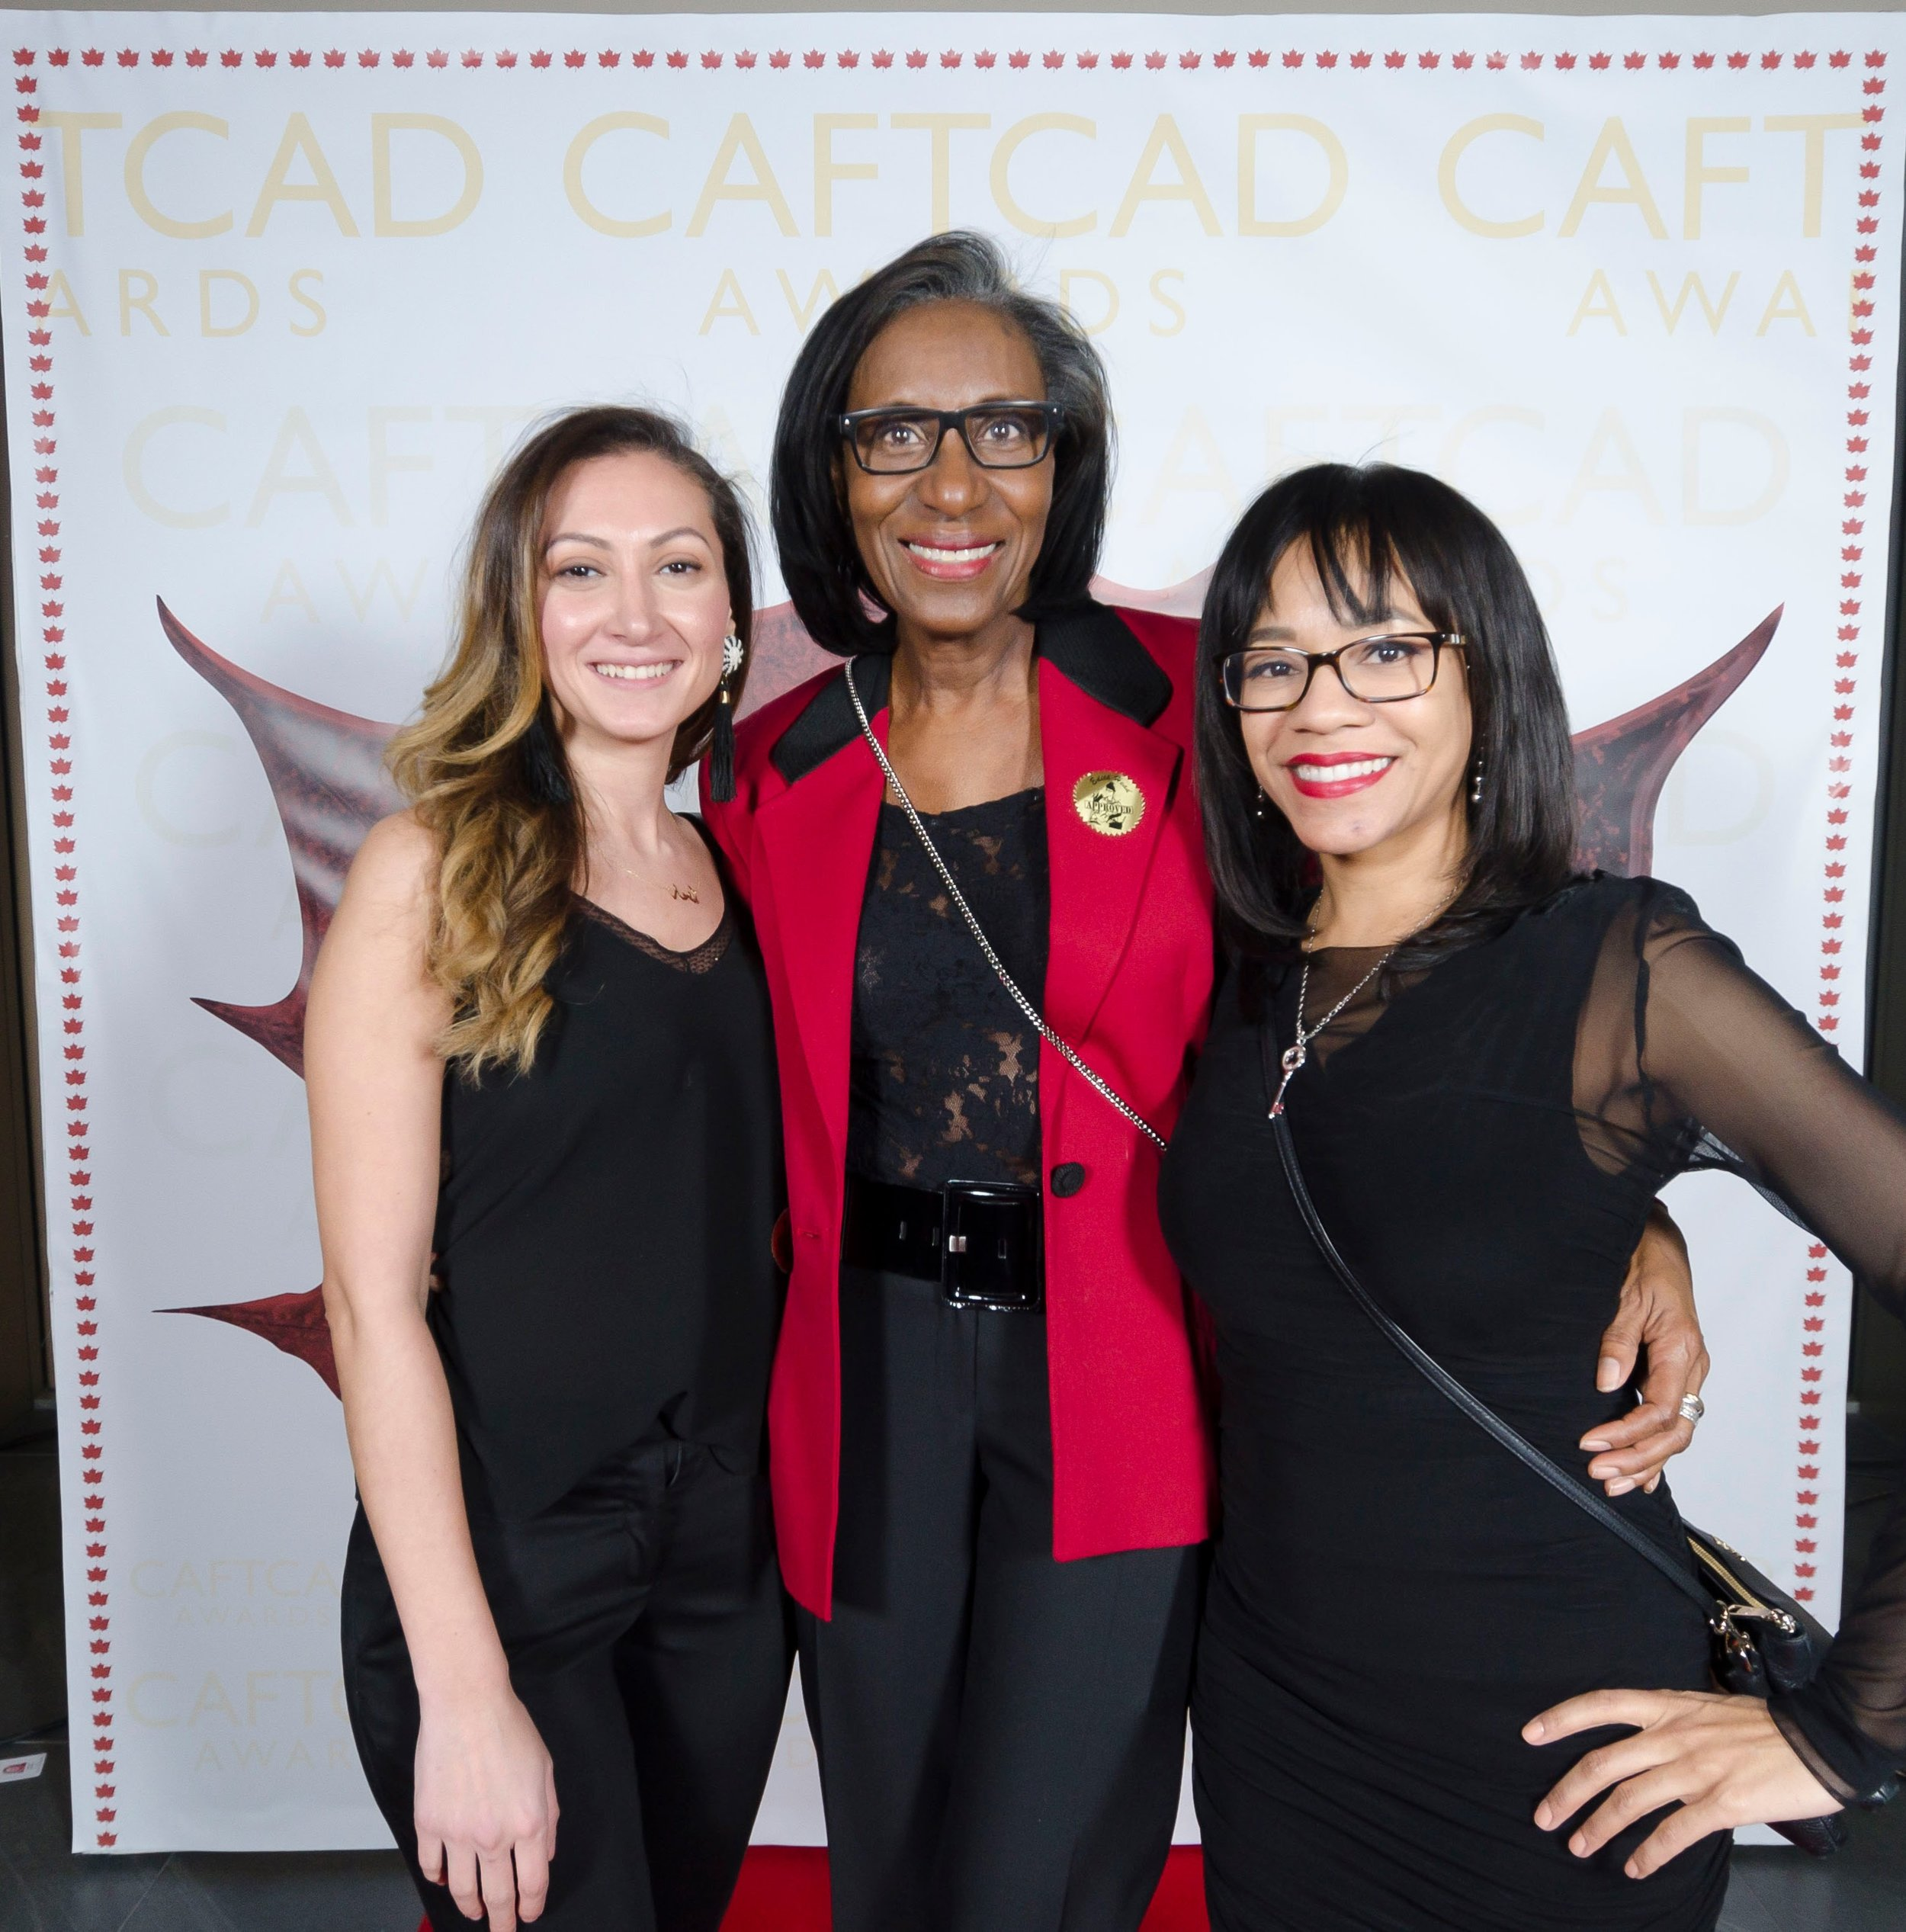 Ethar Ismail, CAFTCAD Voting Coordinator Iris Simpson and Brigette Boaretto